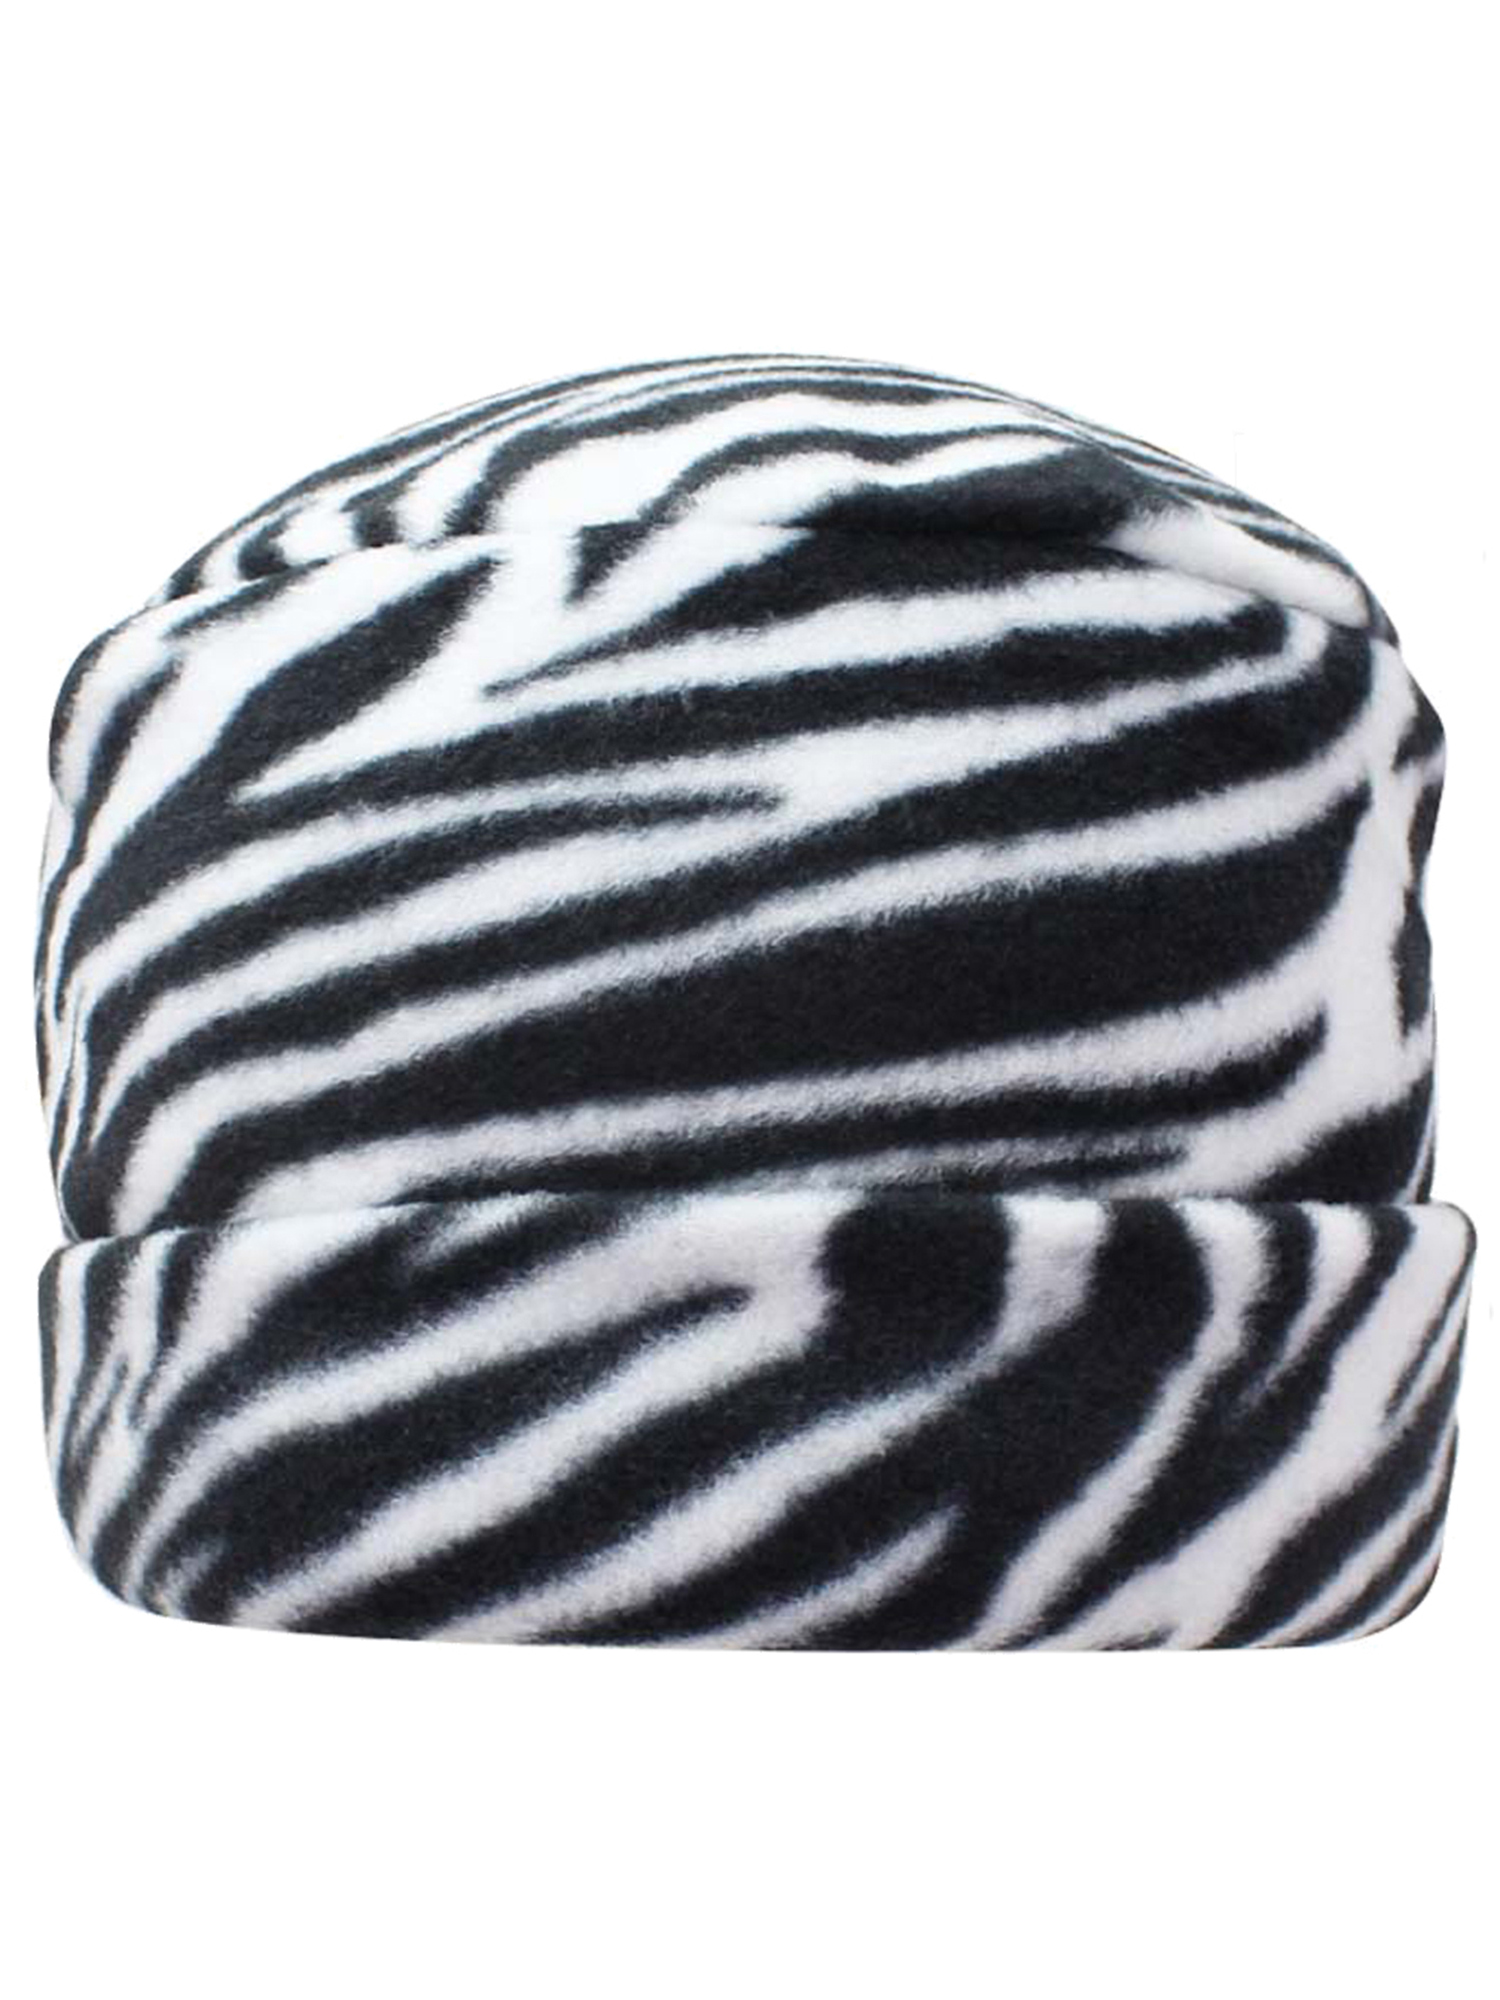 70e5fdd699d Animal Print Fleece Hat Scarf   Matching Glove Set White. About this  product. Picture 1 of 6  Picture 2 of 6  Picture 3 of 6  Picture 4 of 6